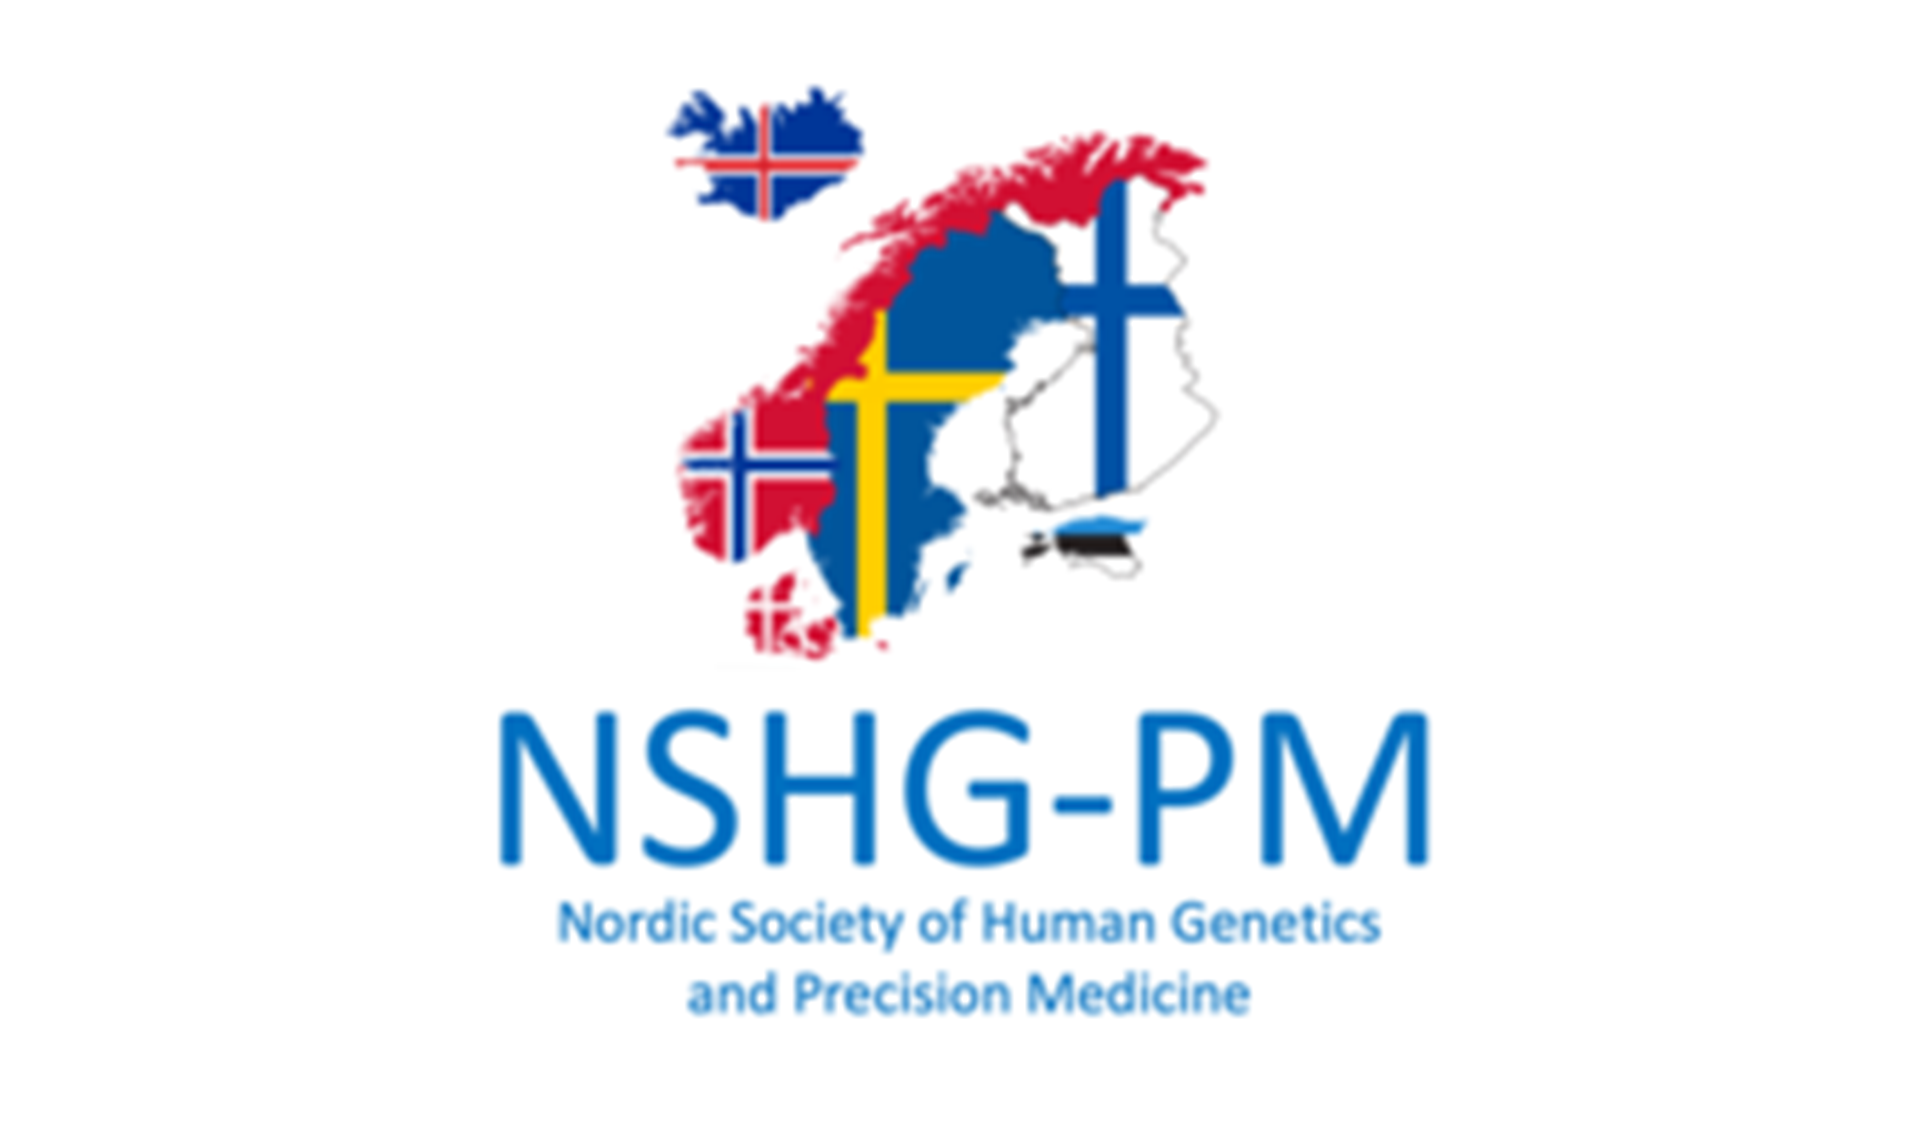 Nordic Society of Human Genetics and Precision Medicine web